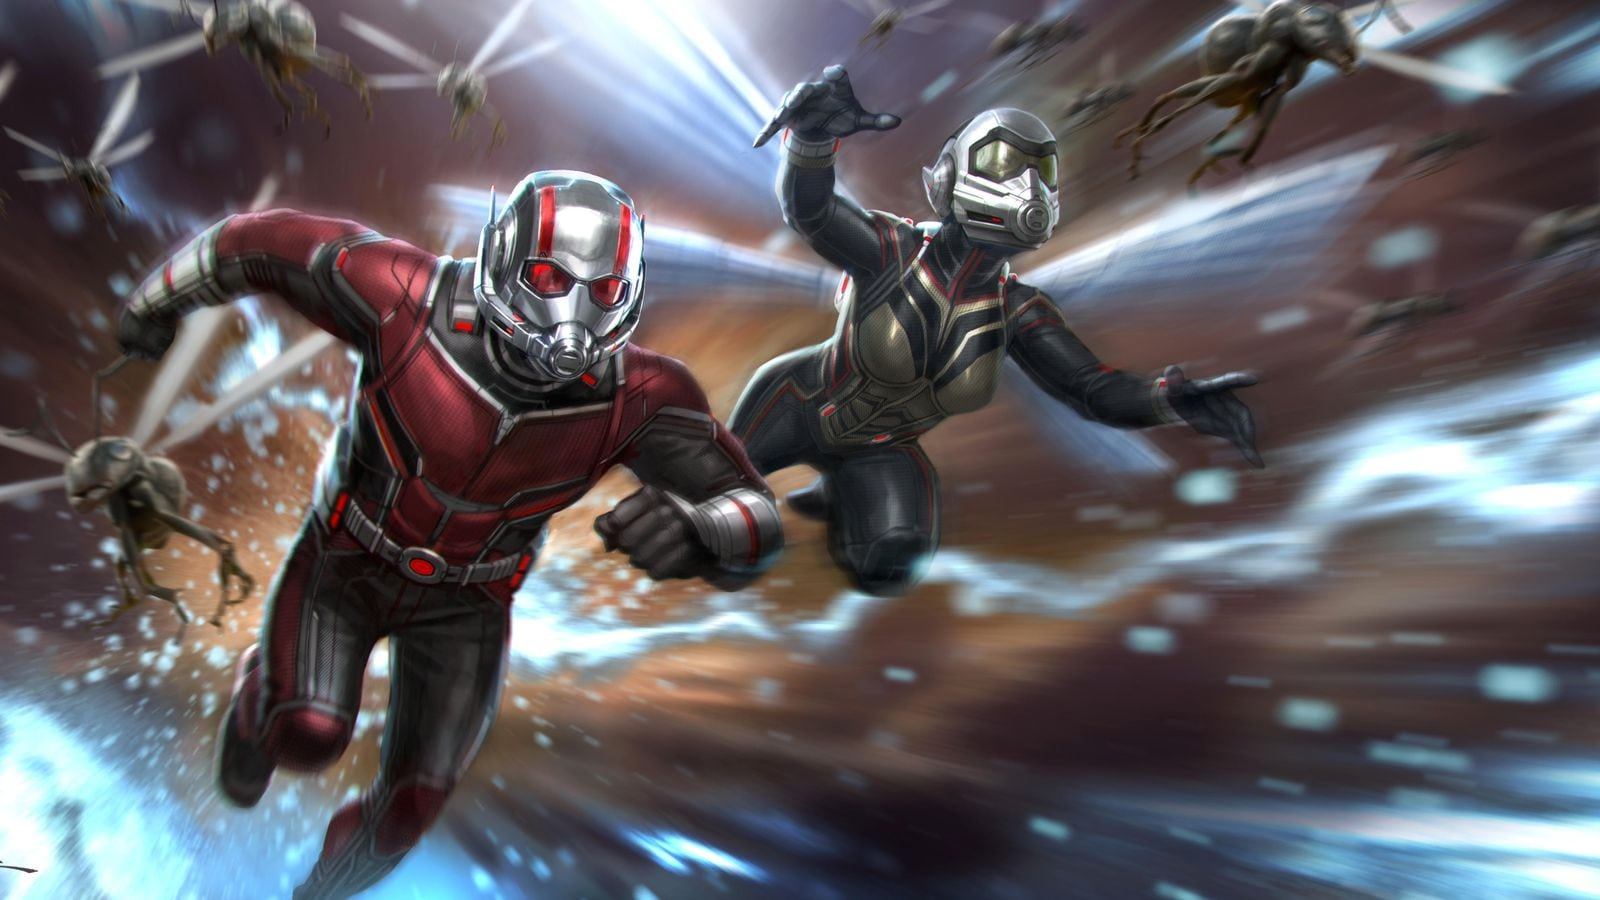 Marvel's Ant-Man and the Wasp director on the prospect of Ant-Man 3